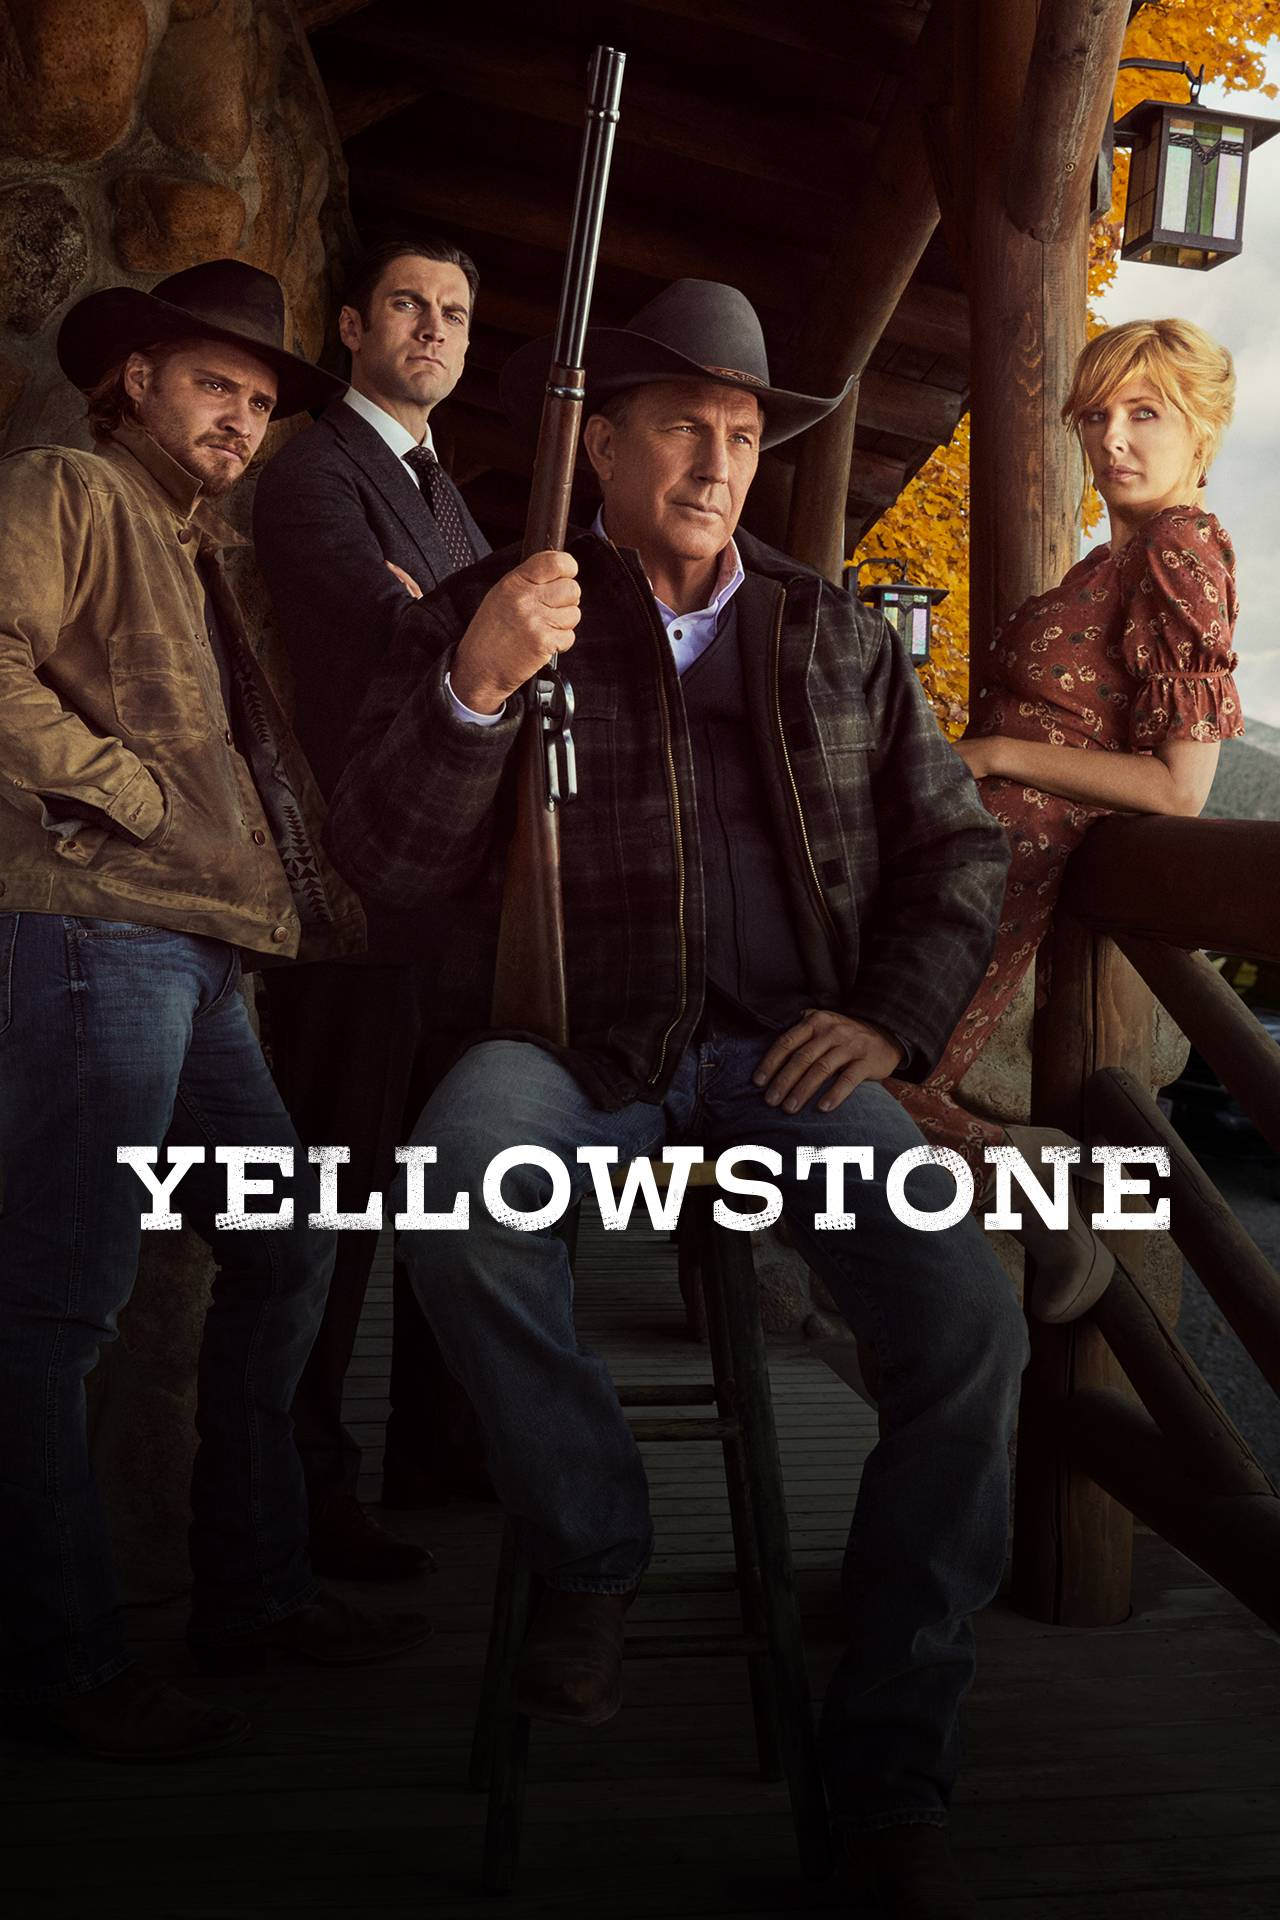 Looking for a new TV Show to binge?? Yellowstone is what you've been looking for! Both Handley and Mackenzie can't wait for Wednesday nights to see what John Dutton and his family are up too.